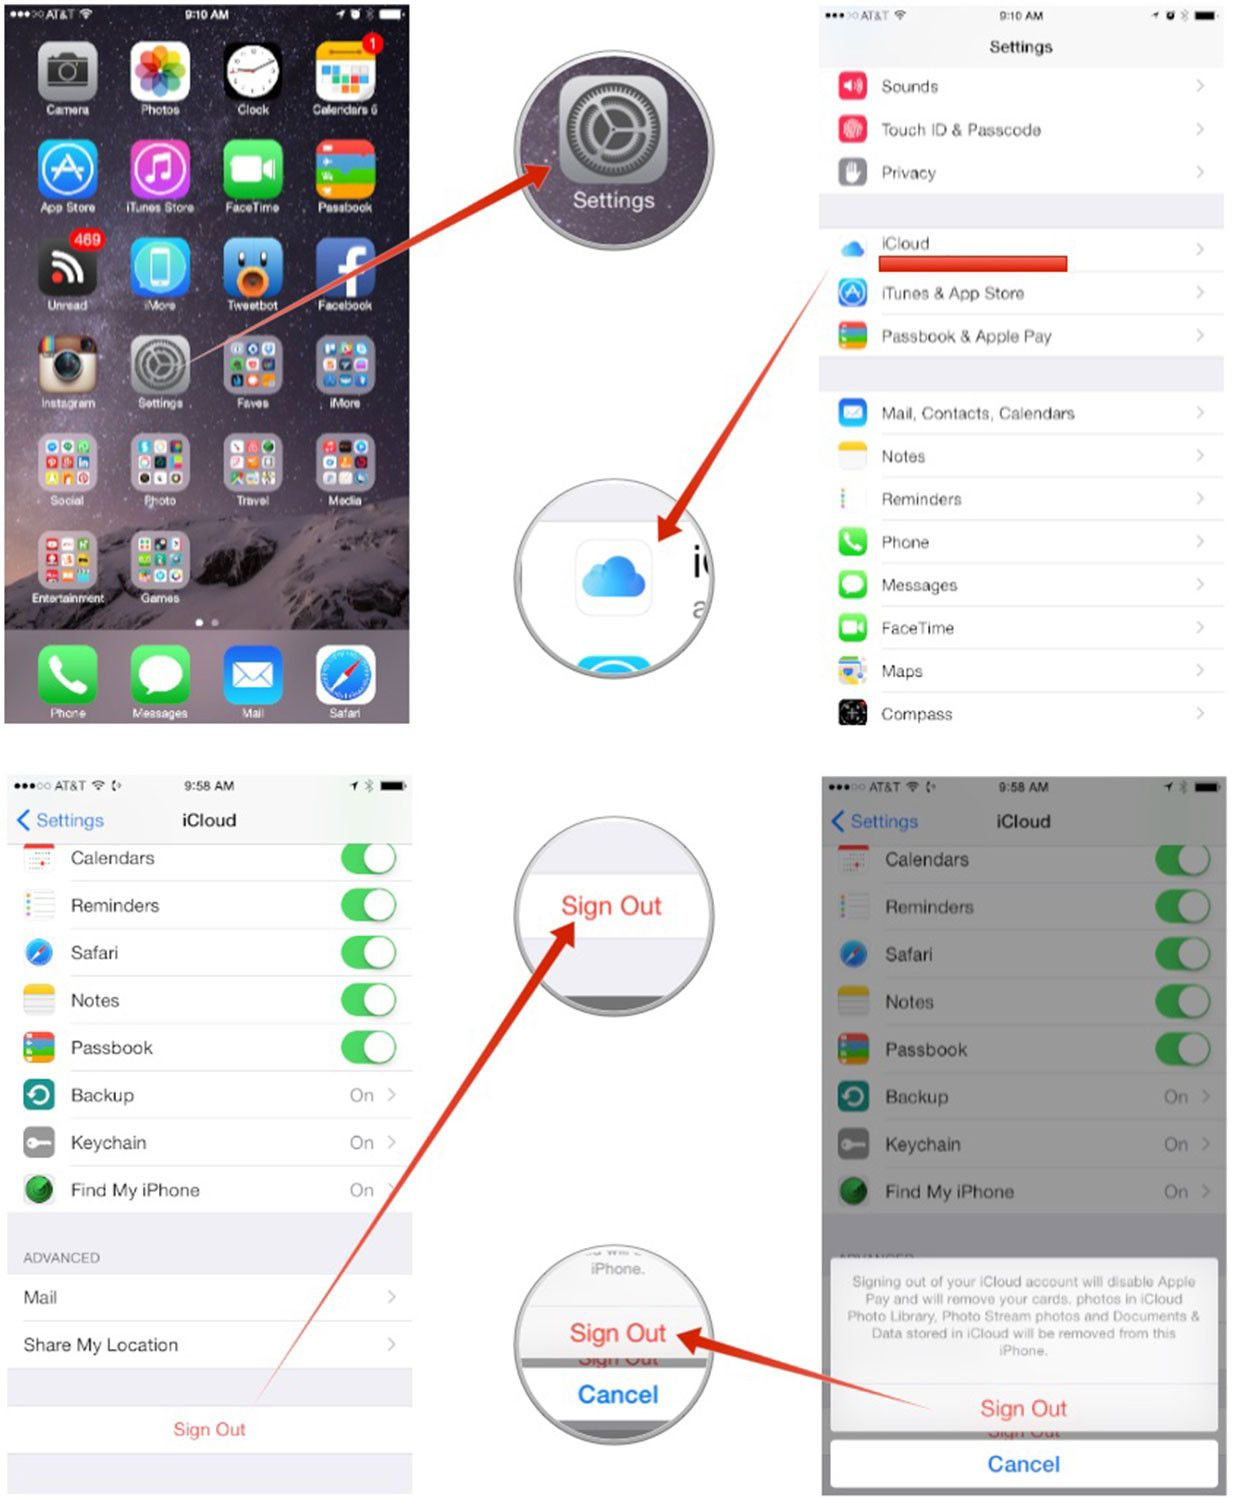 How to delete individual iMessages or Texts in iOS 8 and 9